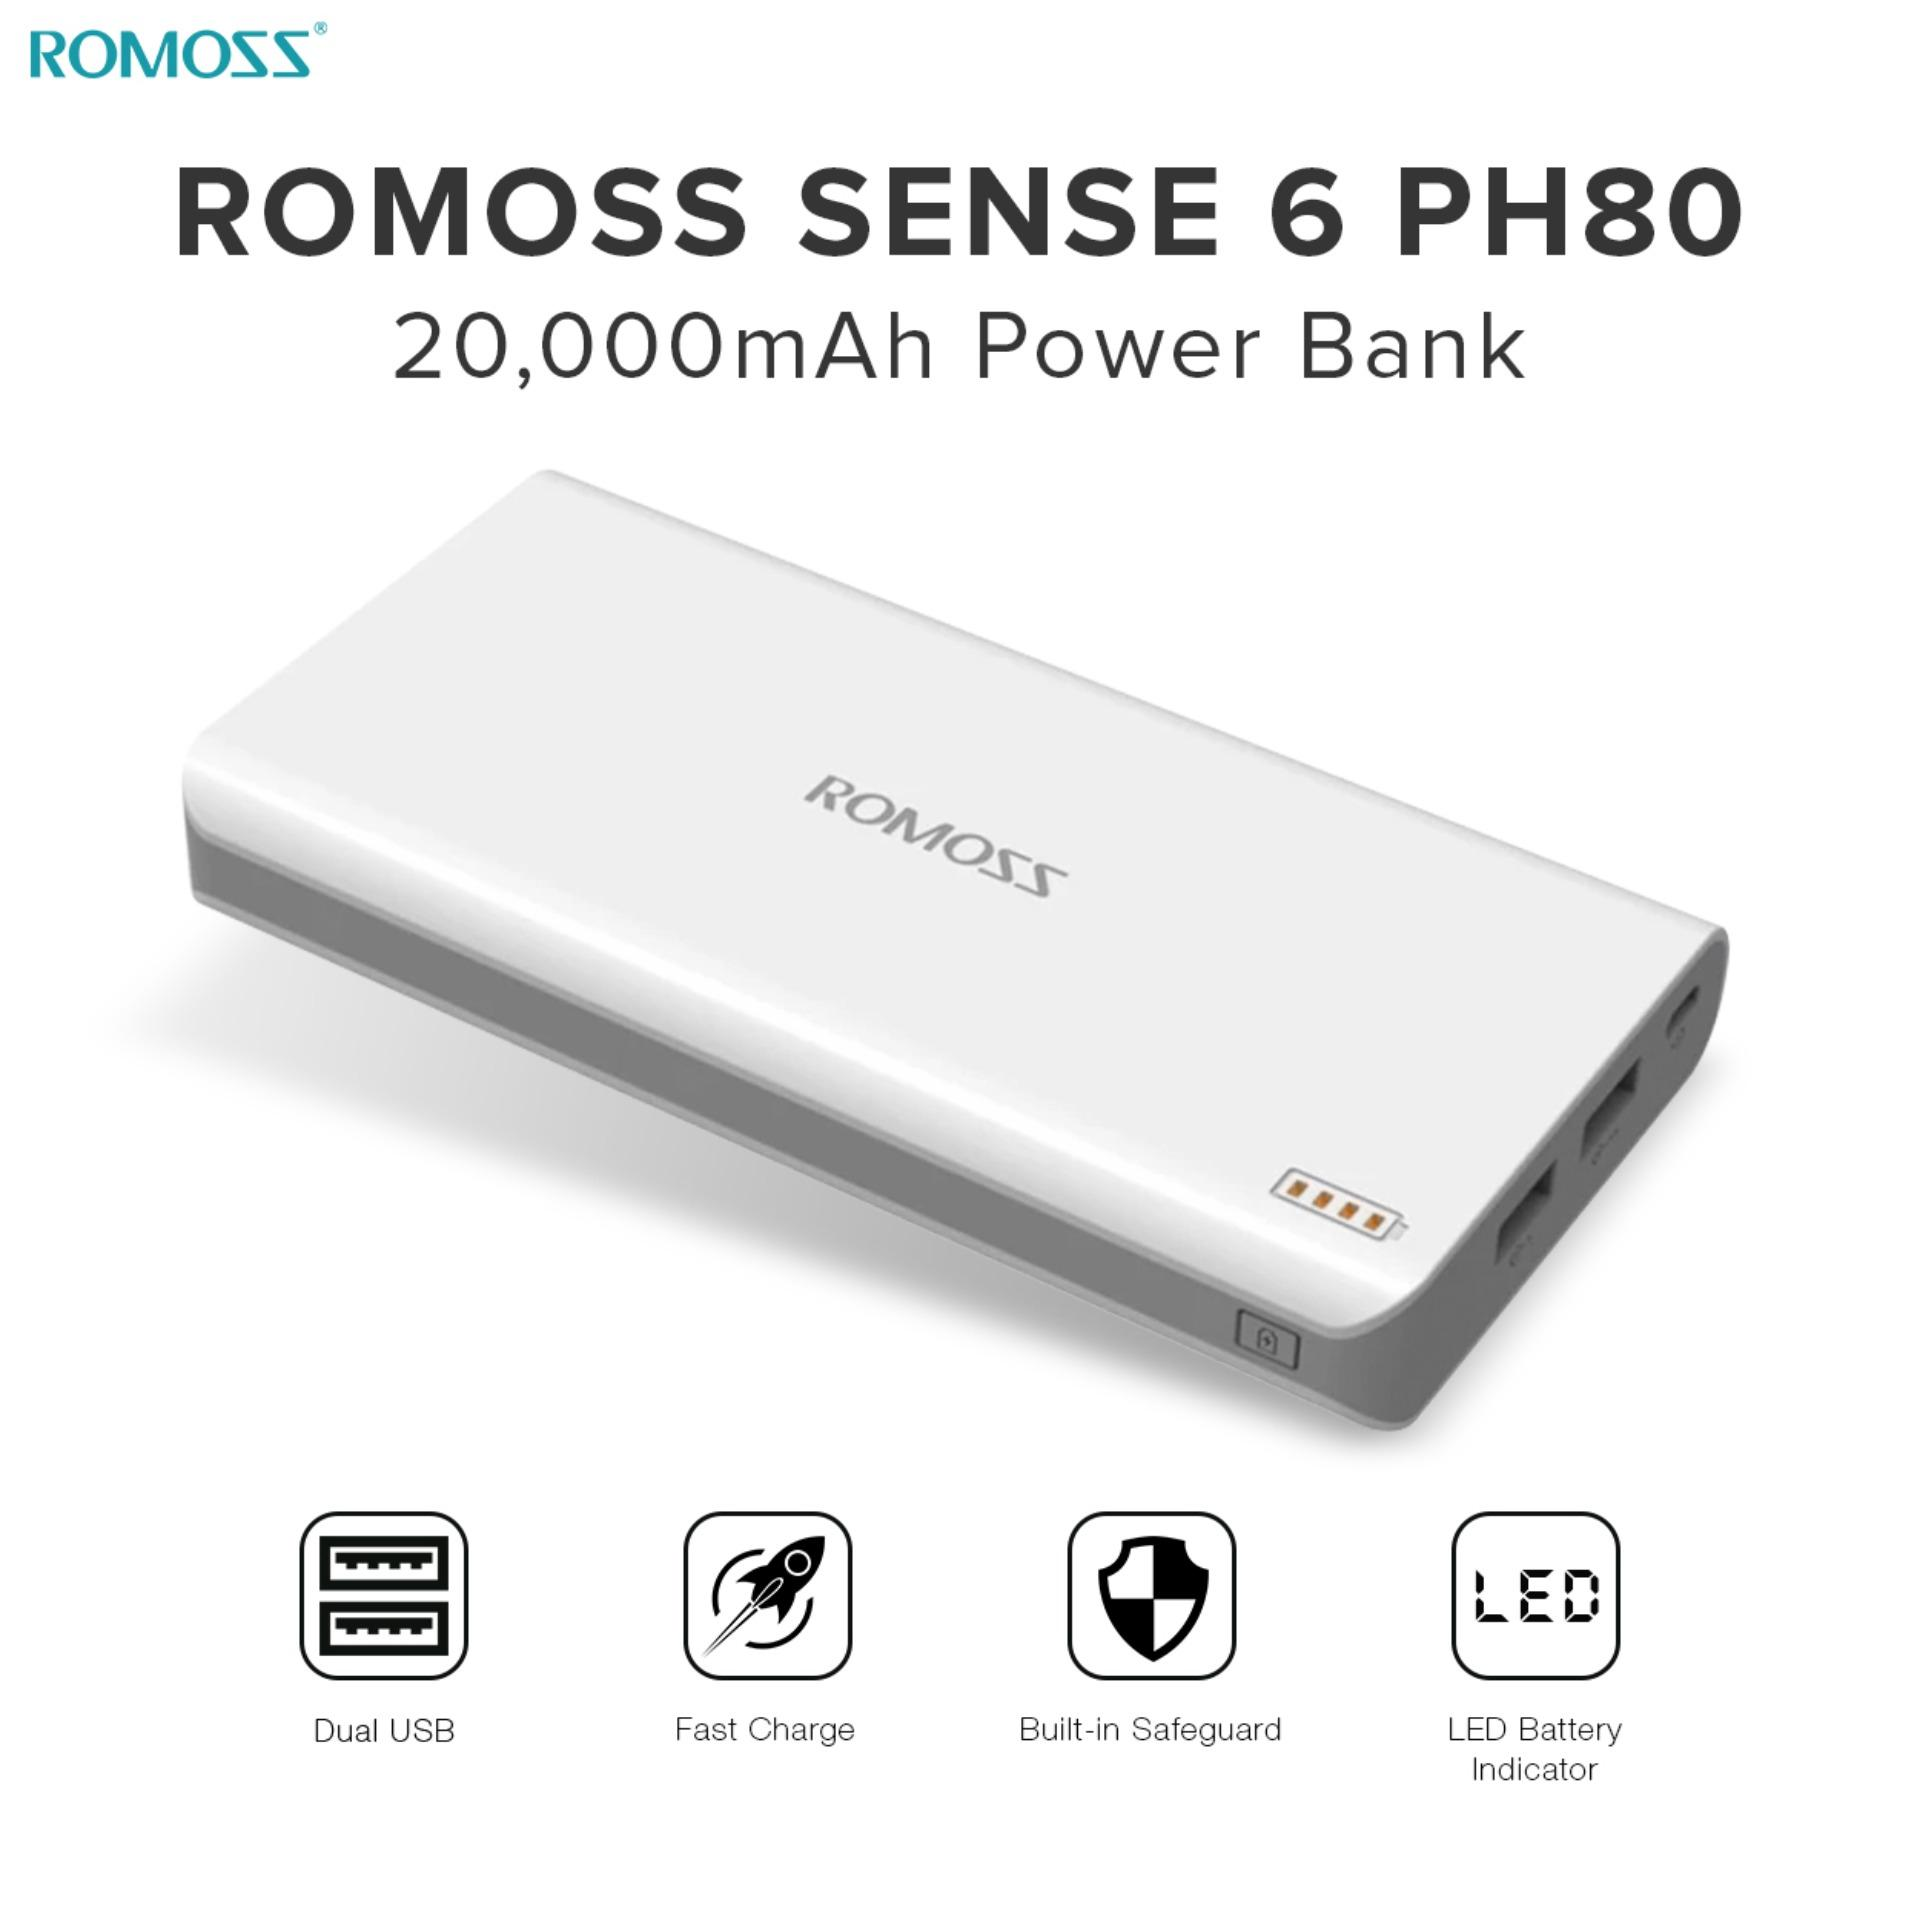 Power Bank For Sale Charger Prices Brands Specs In P 03 Samsung Travell Branded Asus 21a Micro Usb Romoss Sense 6 Ph80 20000mah Fast Charging White